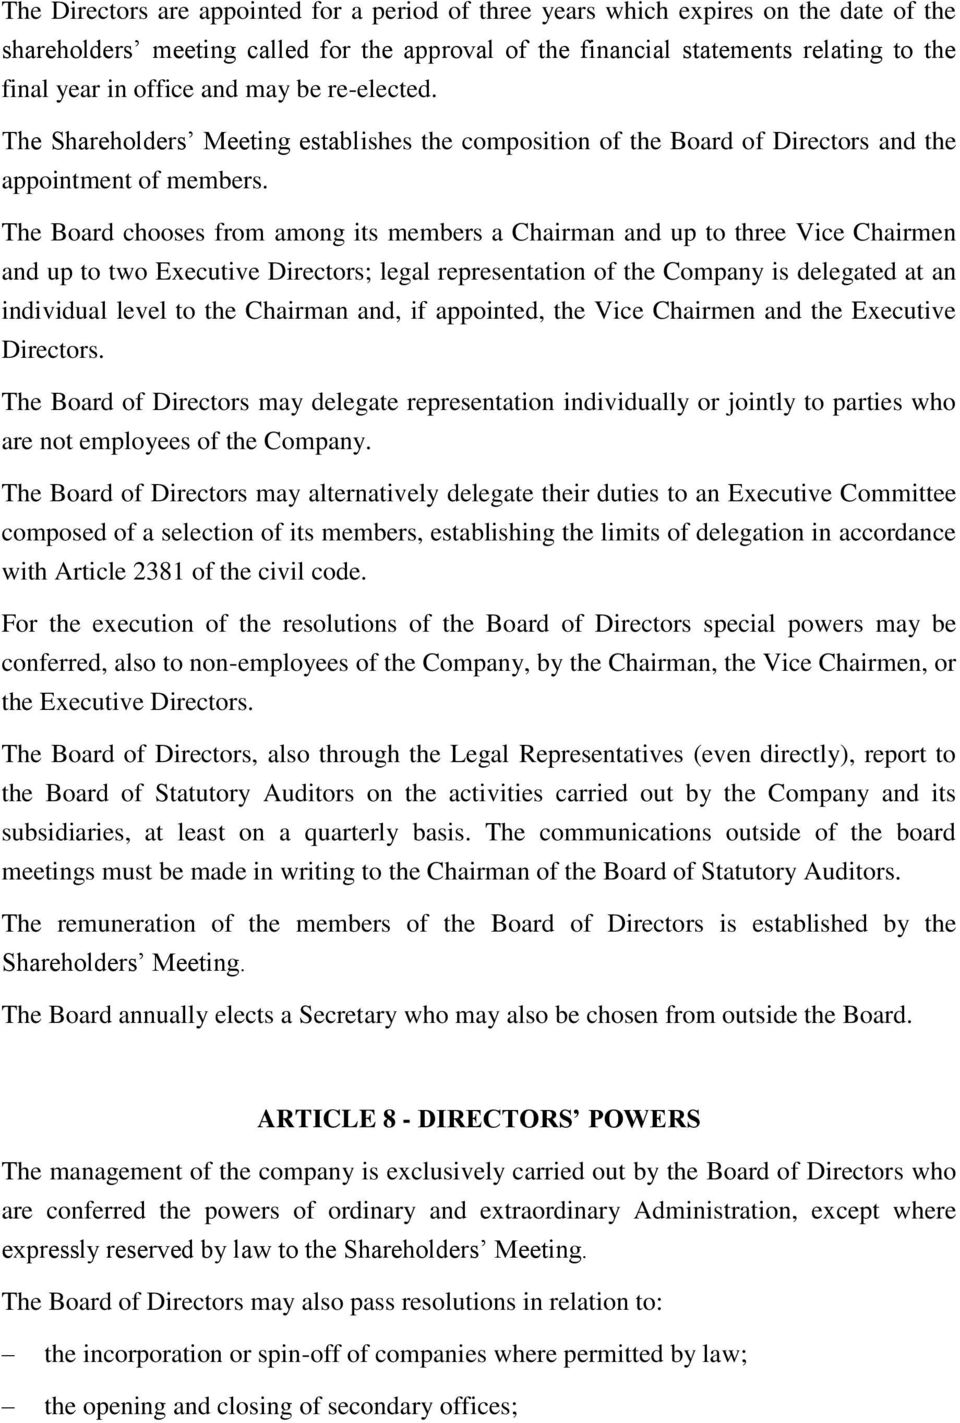 The Board chooses from among its members a Chairman and up to three Vice Chairmen and up to two Executive Directors; legal representation of the Company is delegated at an individual level to the